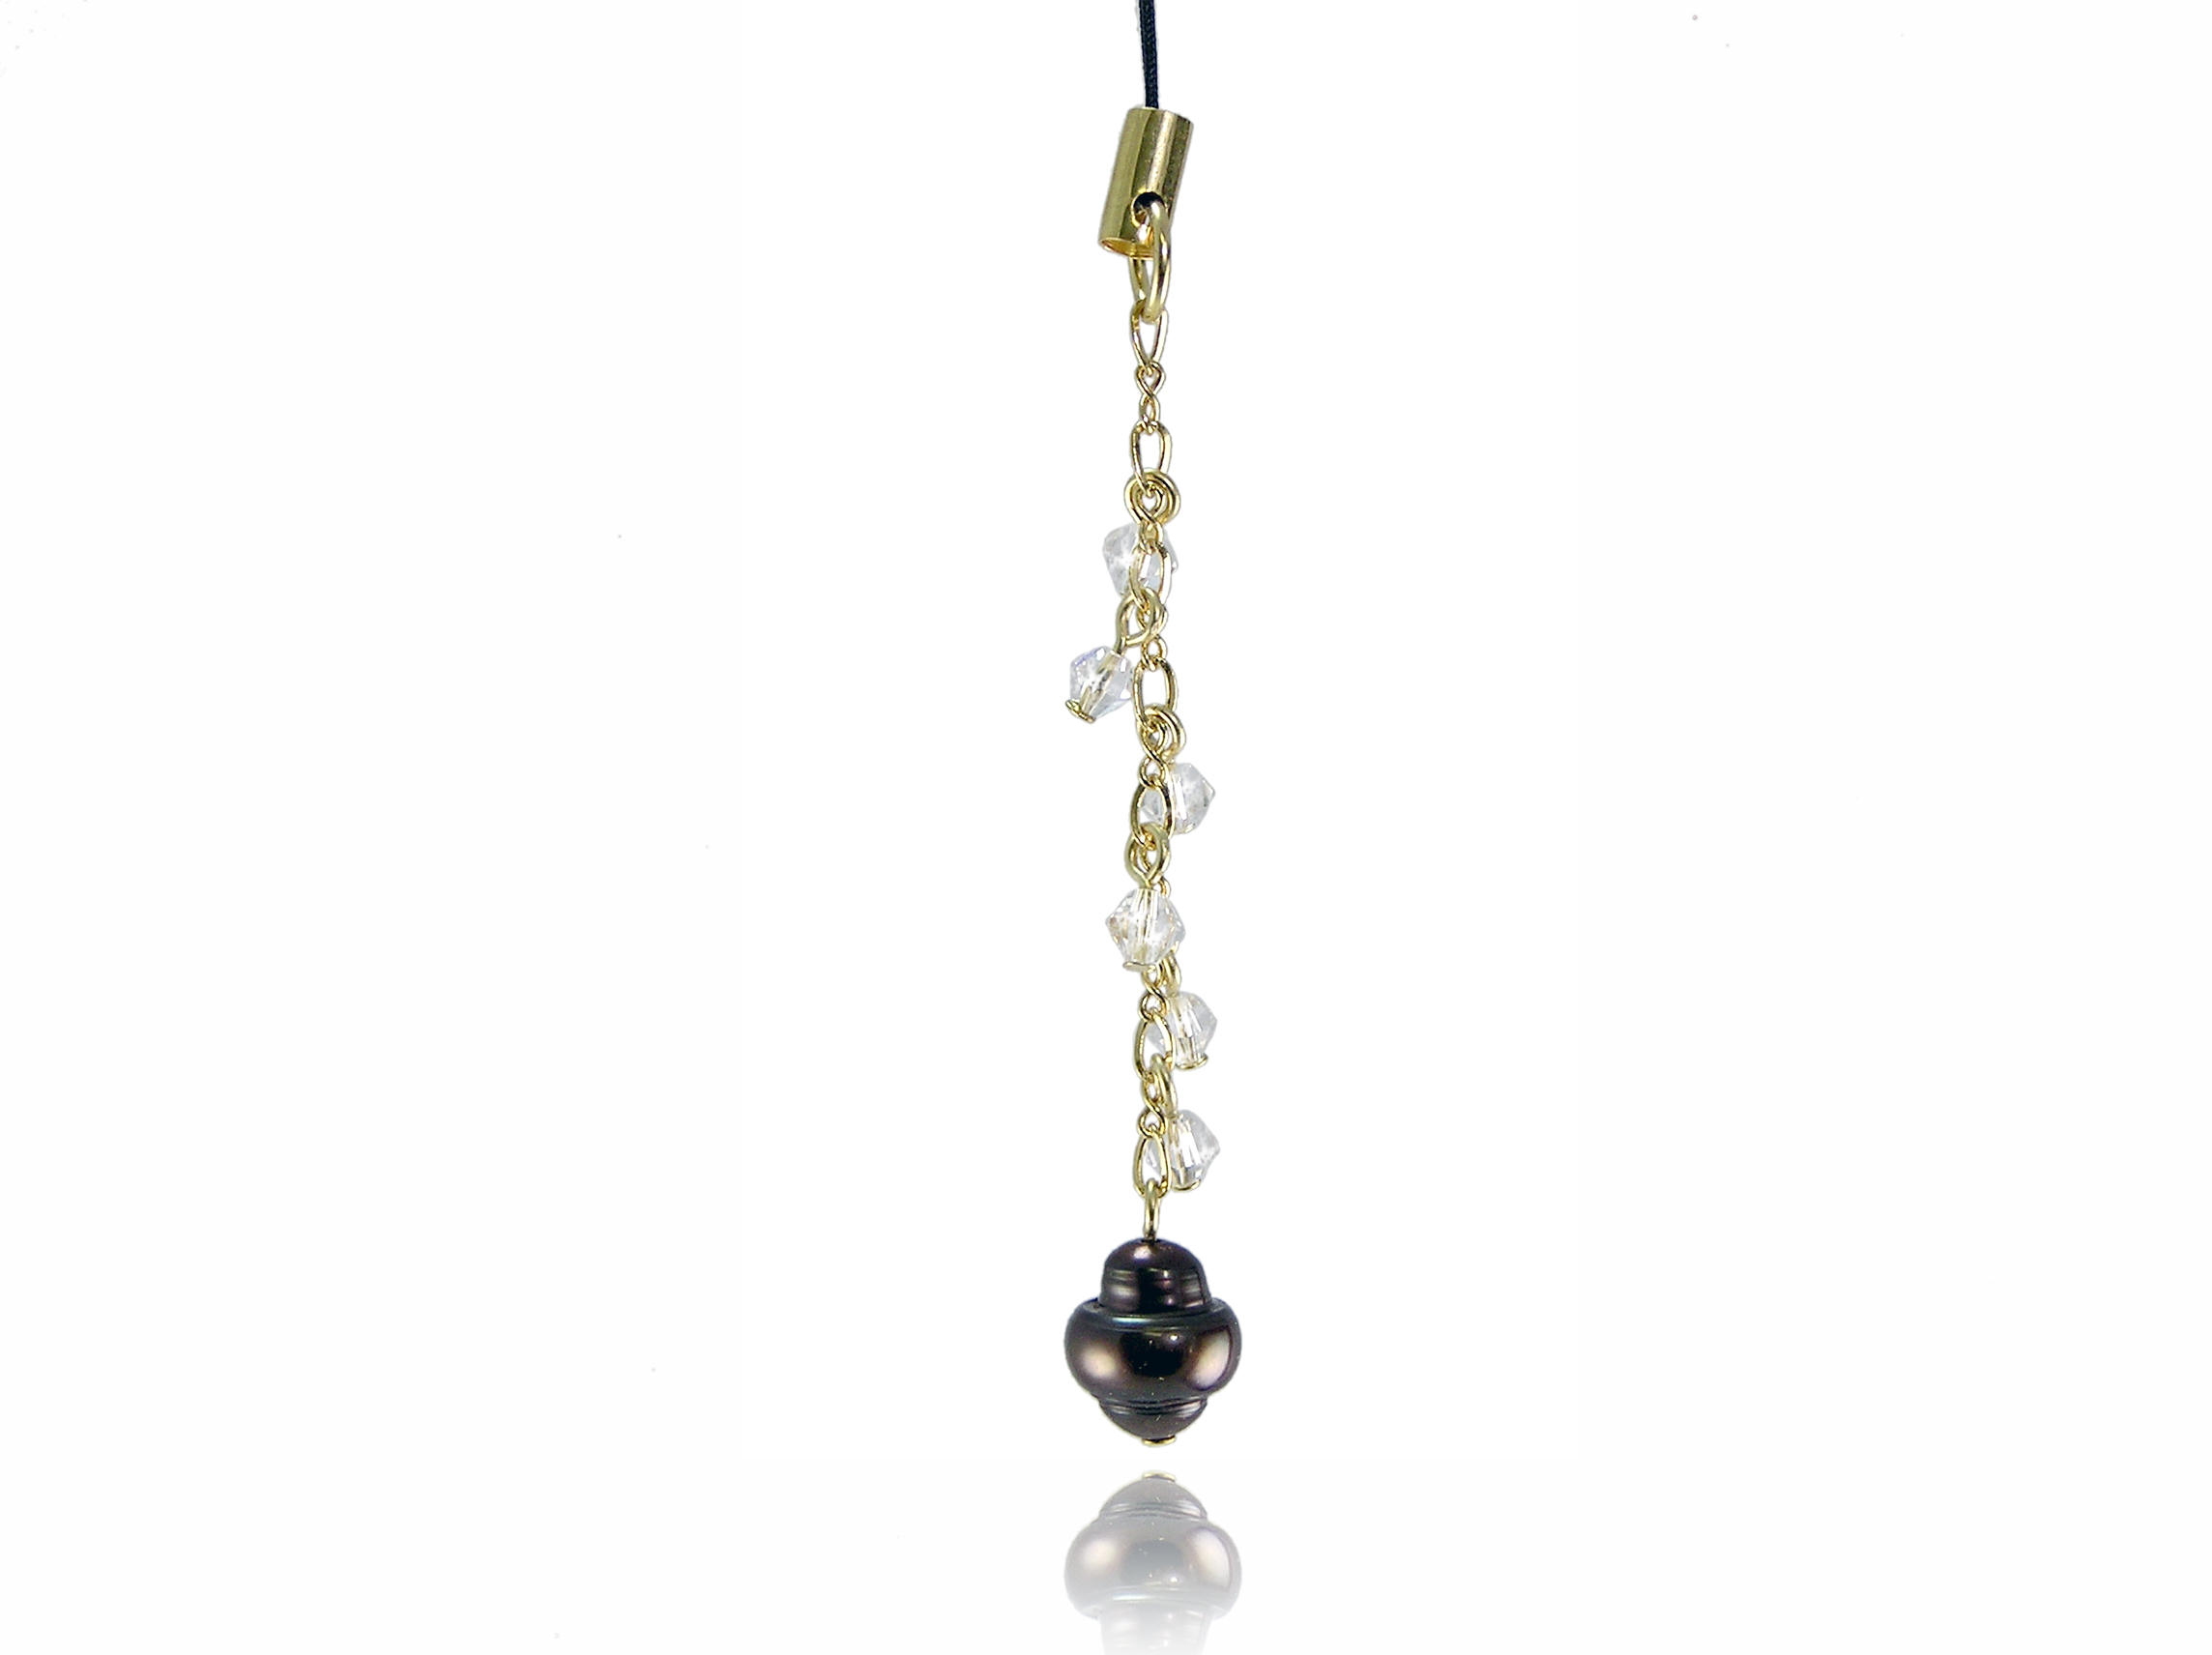 Freshwater Pearl Cell Phone Charm